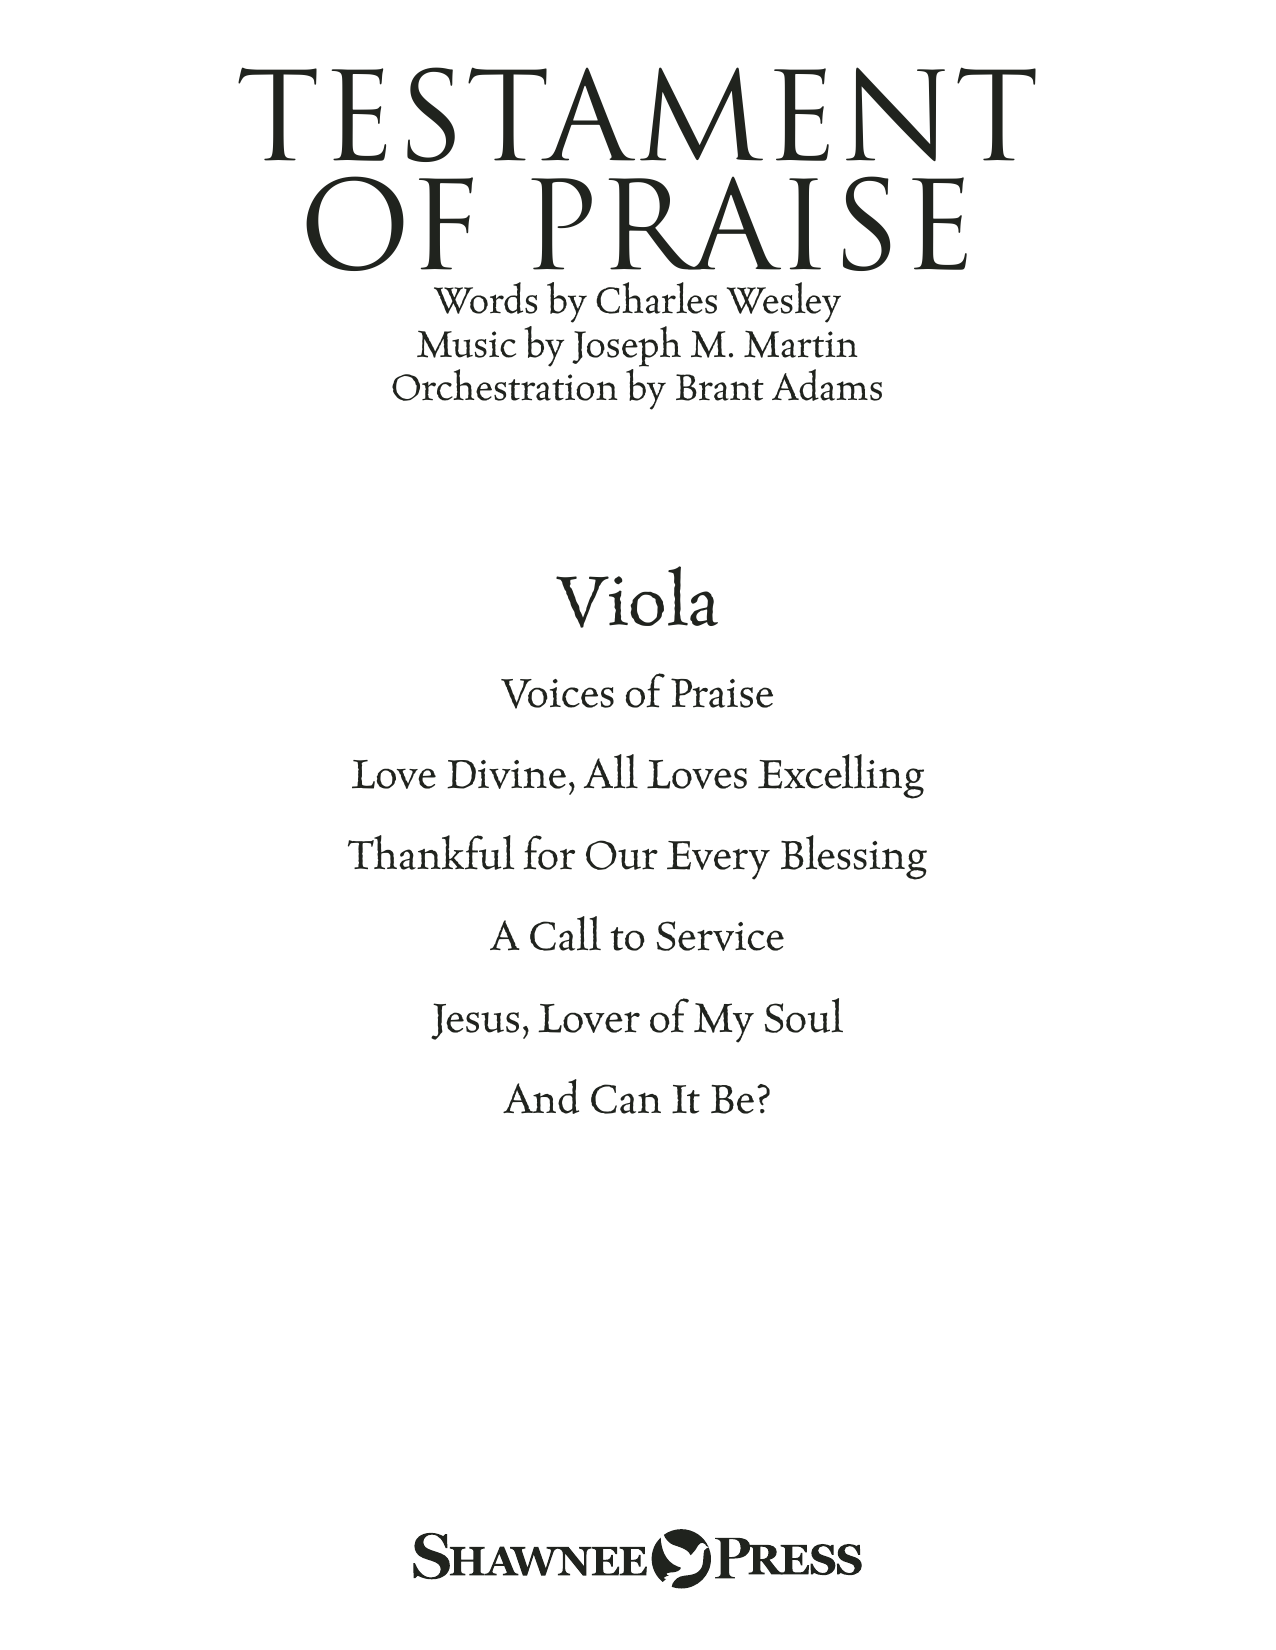 Joseph M. Martin Testament of Praise (A Celebration of Faith) - Viola sheet music notes and chords. Download Printable PDF.